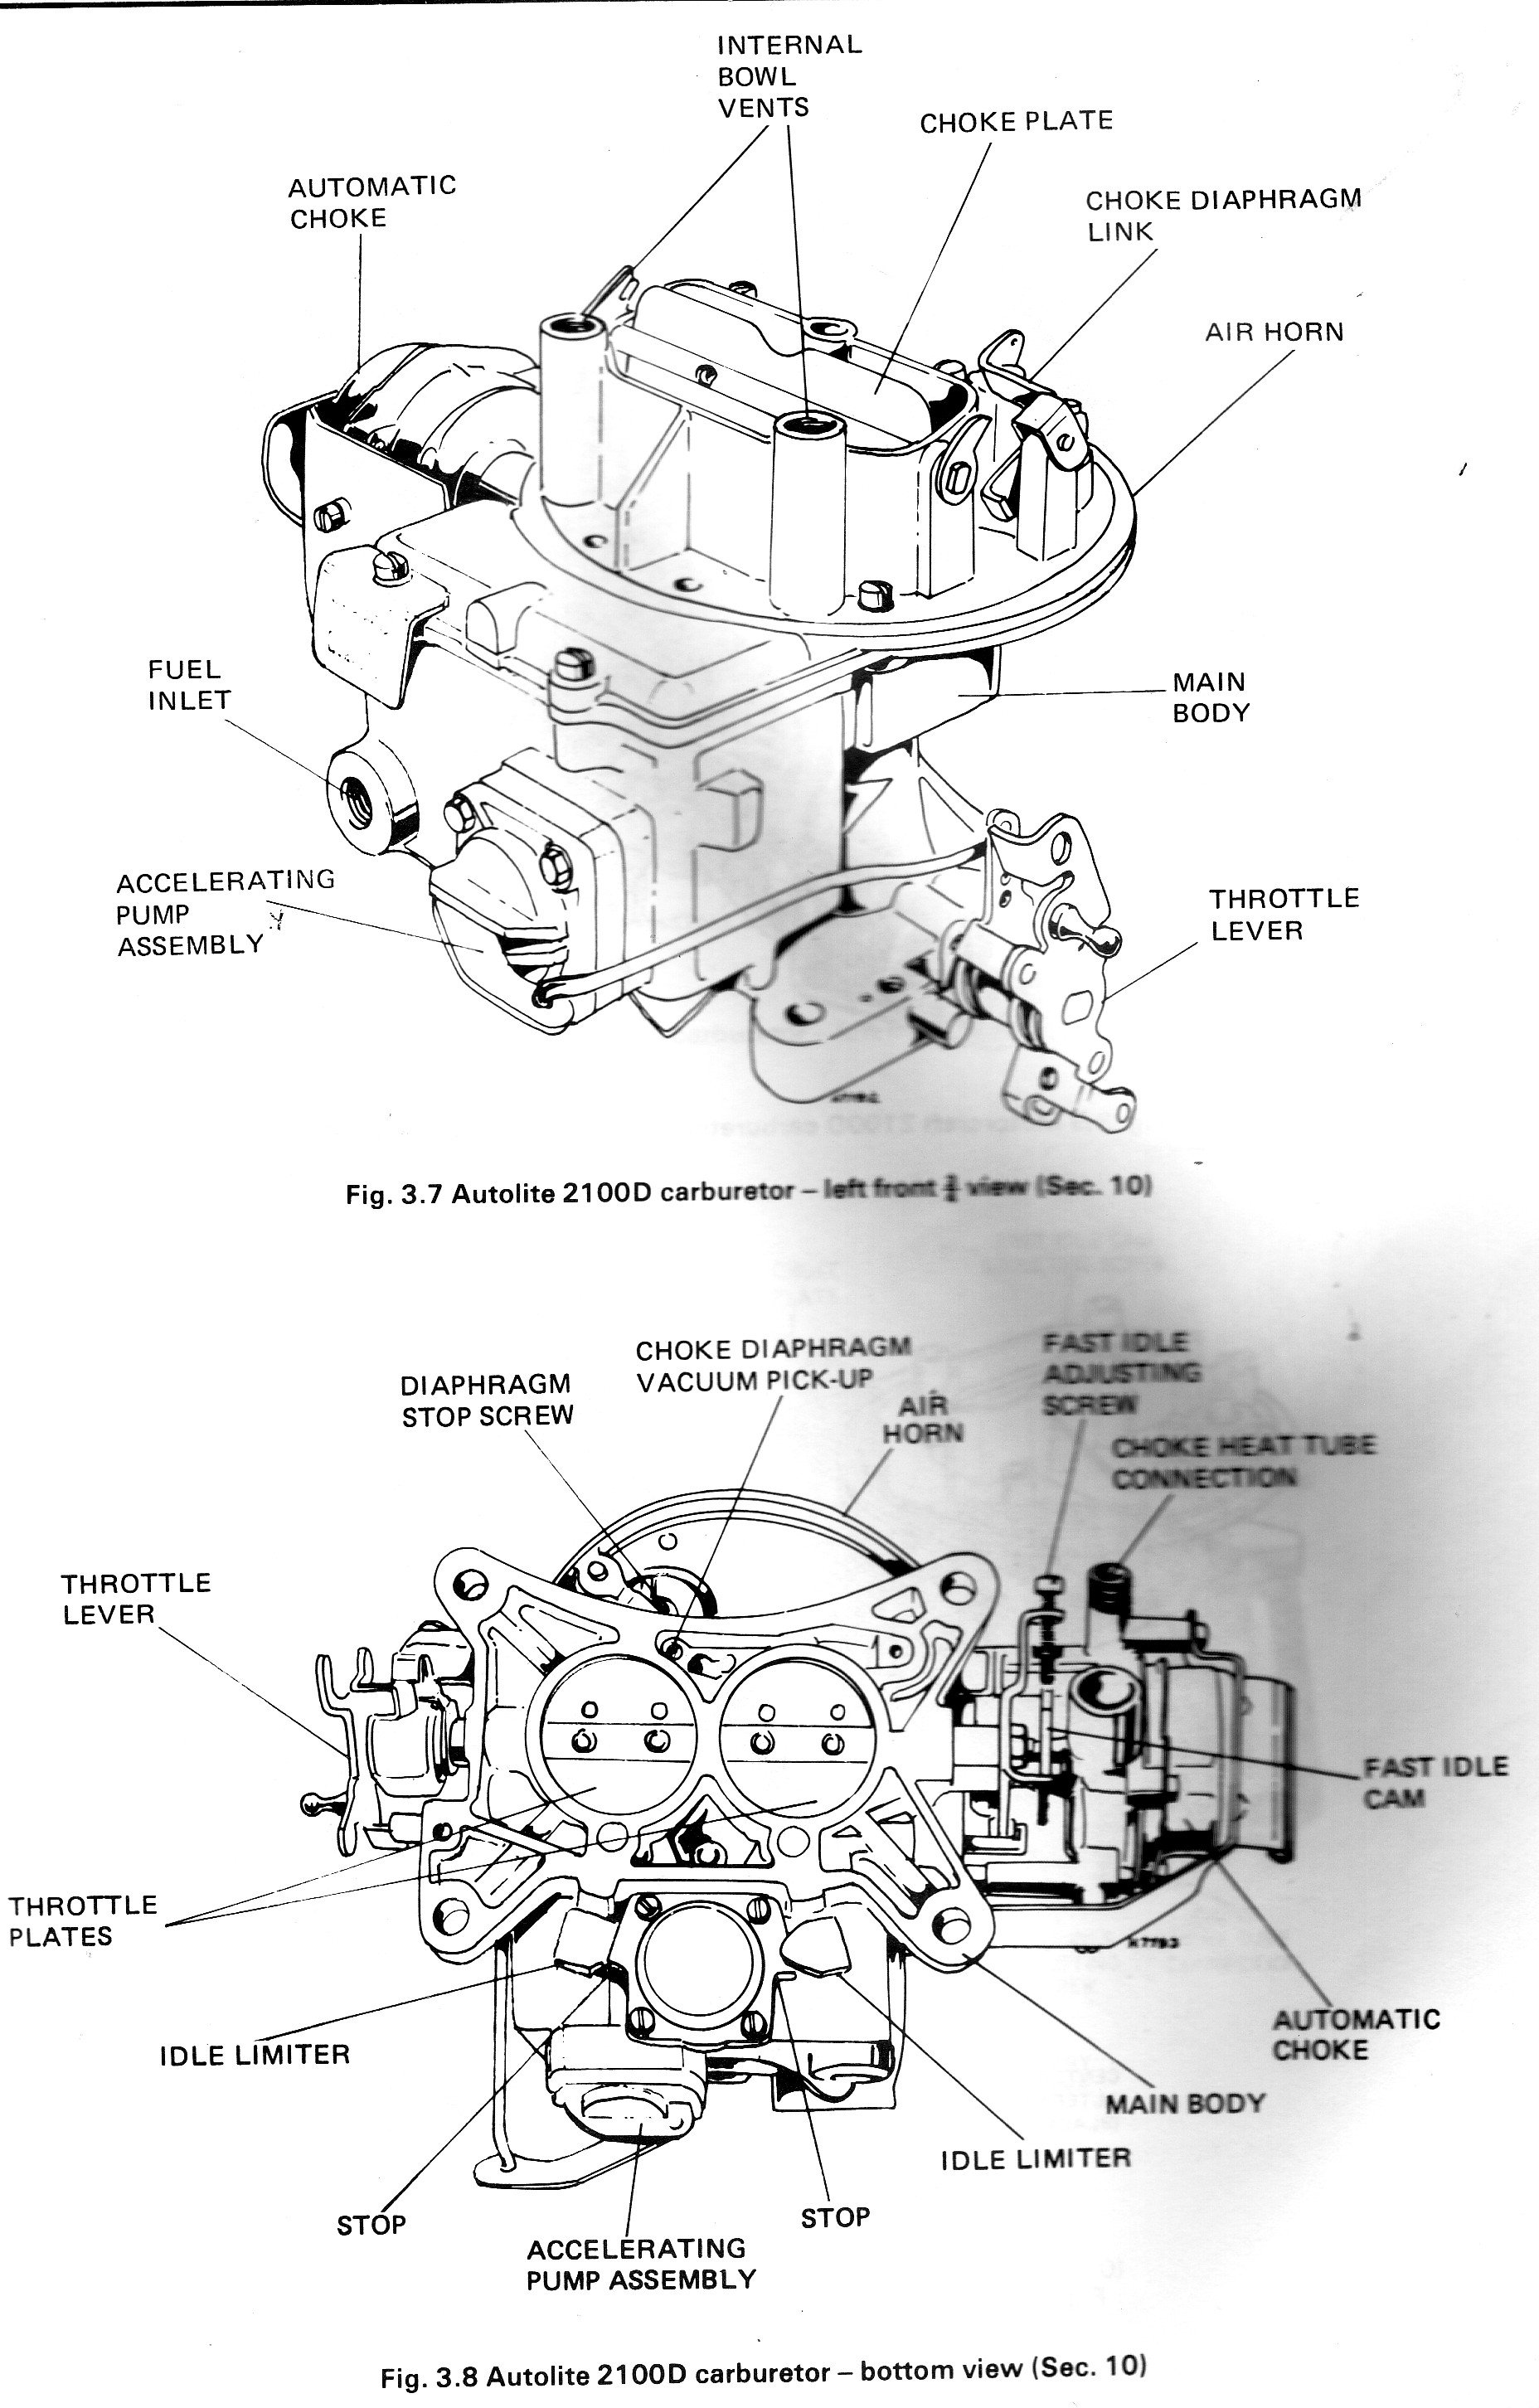 63153d1236399041 2100 carb diagram motorcraft 3 2100 carb diagram page 2 ford mustang forum Motorcraft 2150 Carburetor Identification at edmiracle.co